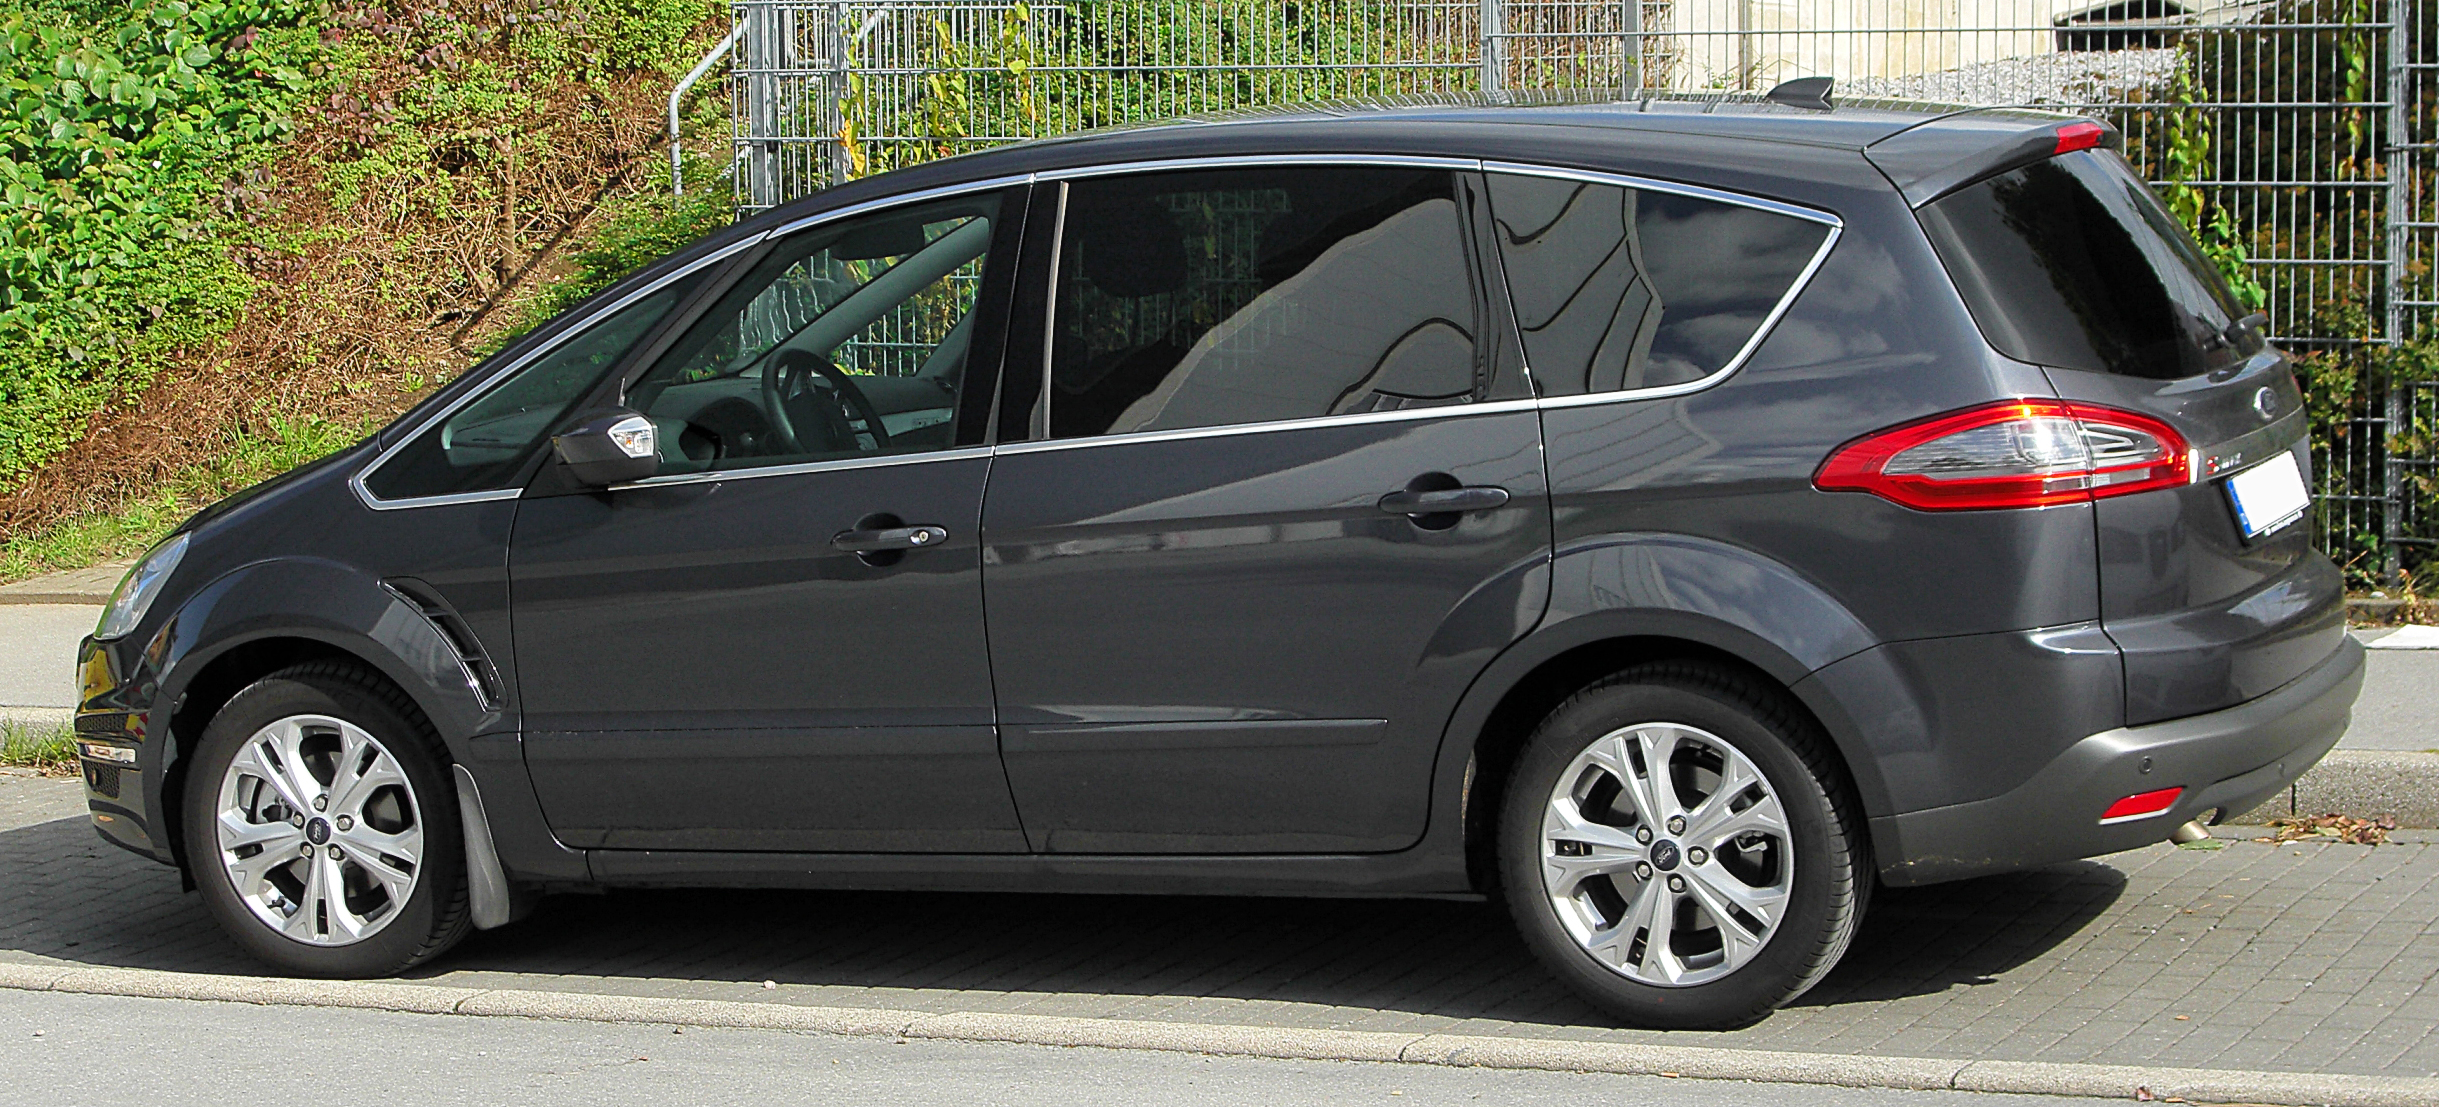 Ford S-Max #4